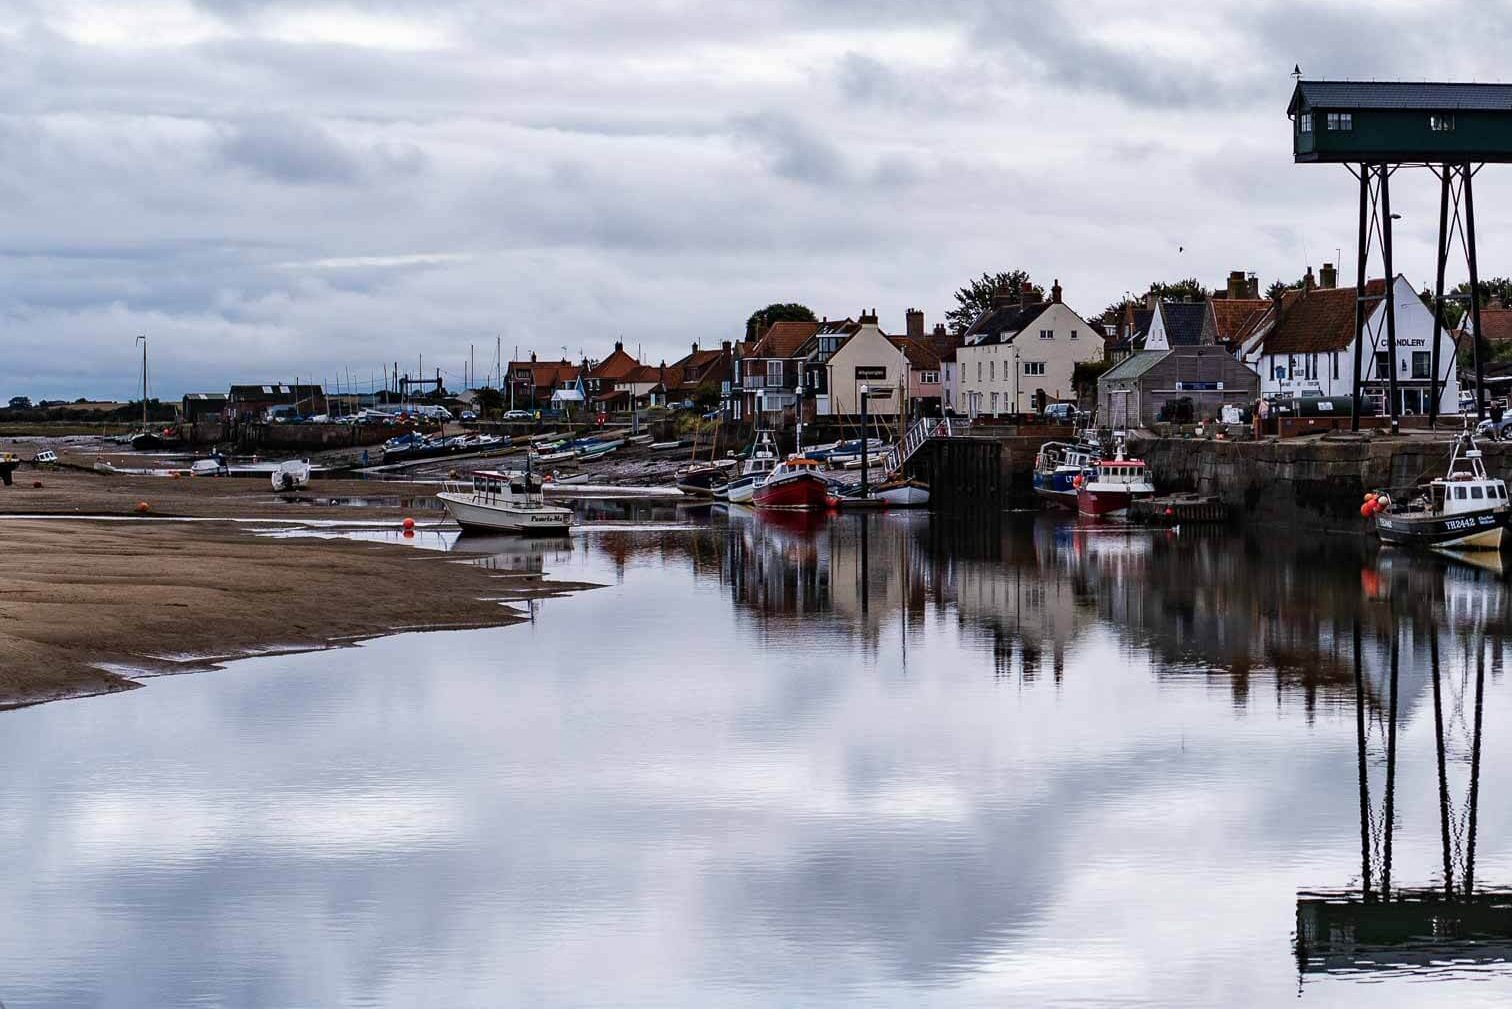 wells-next-to-the-sea harbour with moody sky